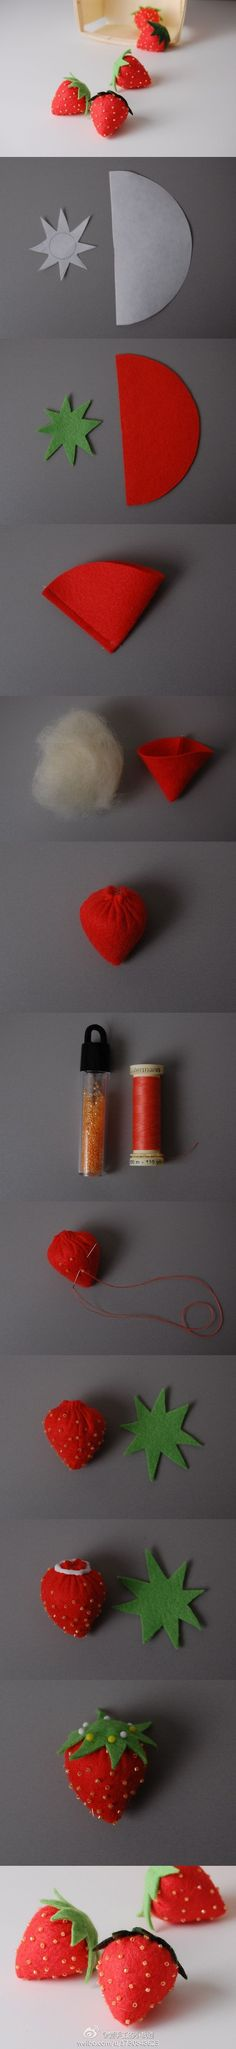 DIY strawberries using felt with seed beads. NO instructions